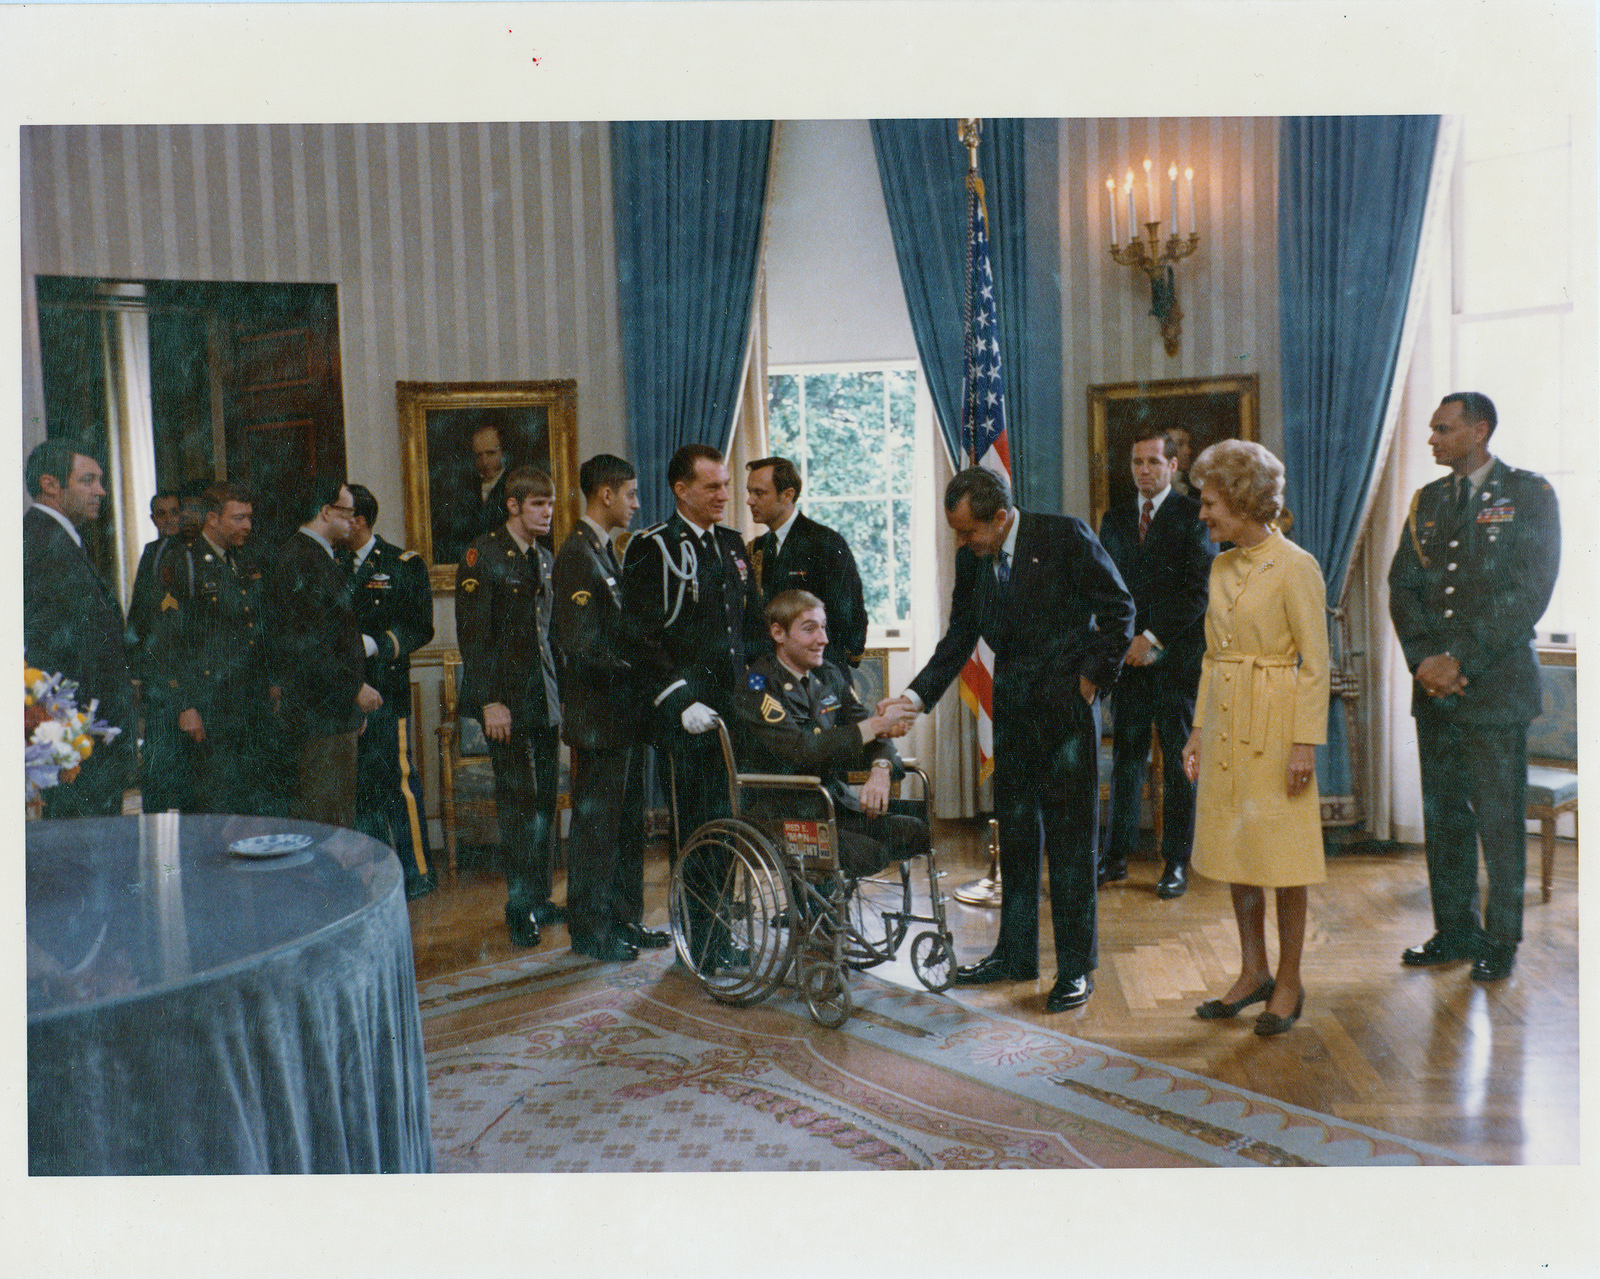 Richard and Pat Nixon Greet Veteran Servicemen and Servicewomen prior to Sharing a Thanksgiving Luncheon Together